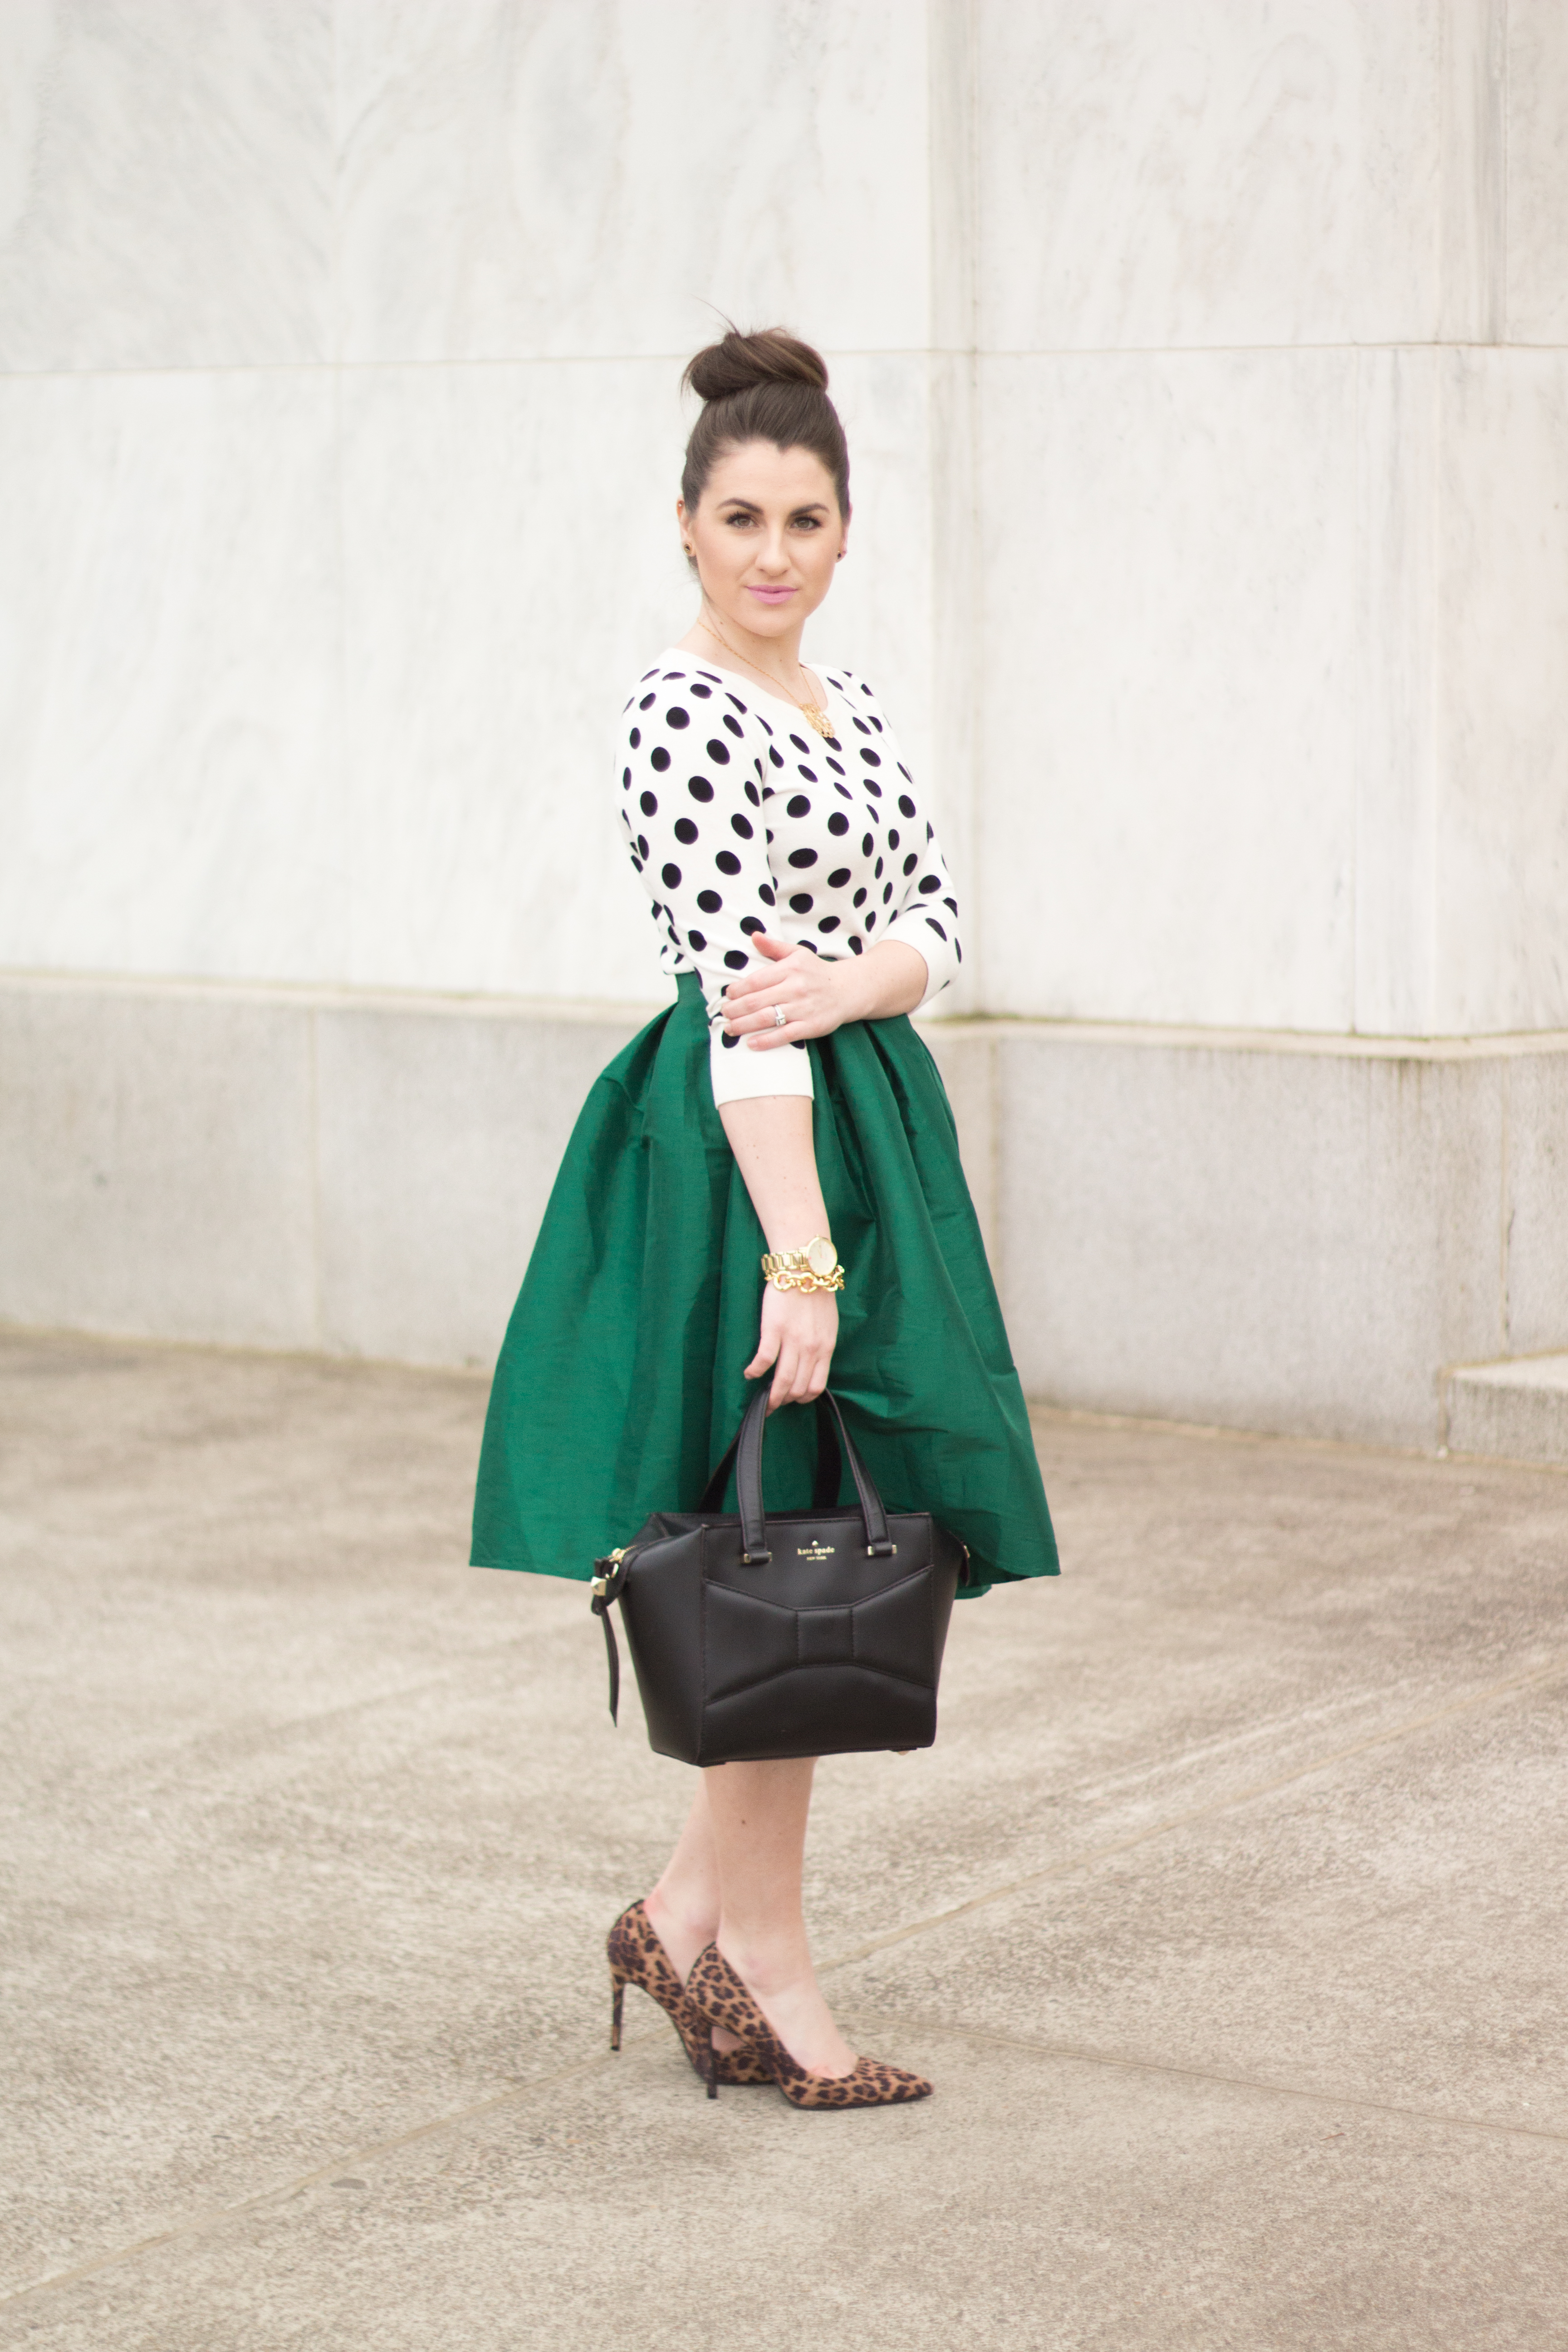 20 ways to dress Kate Spade inspired!